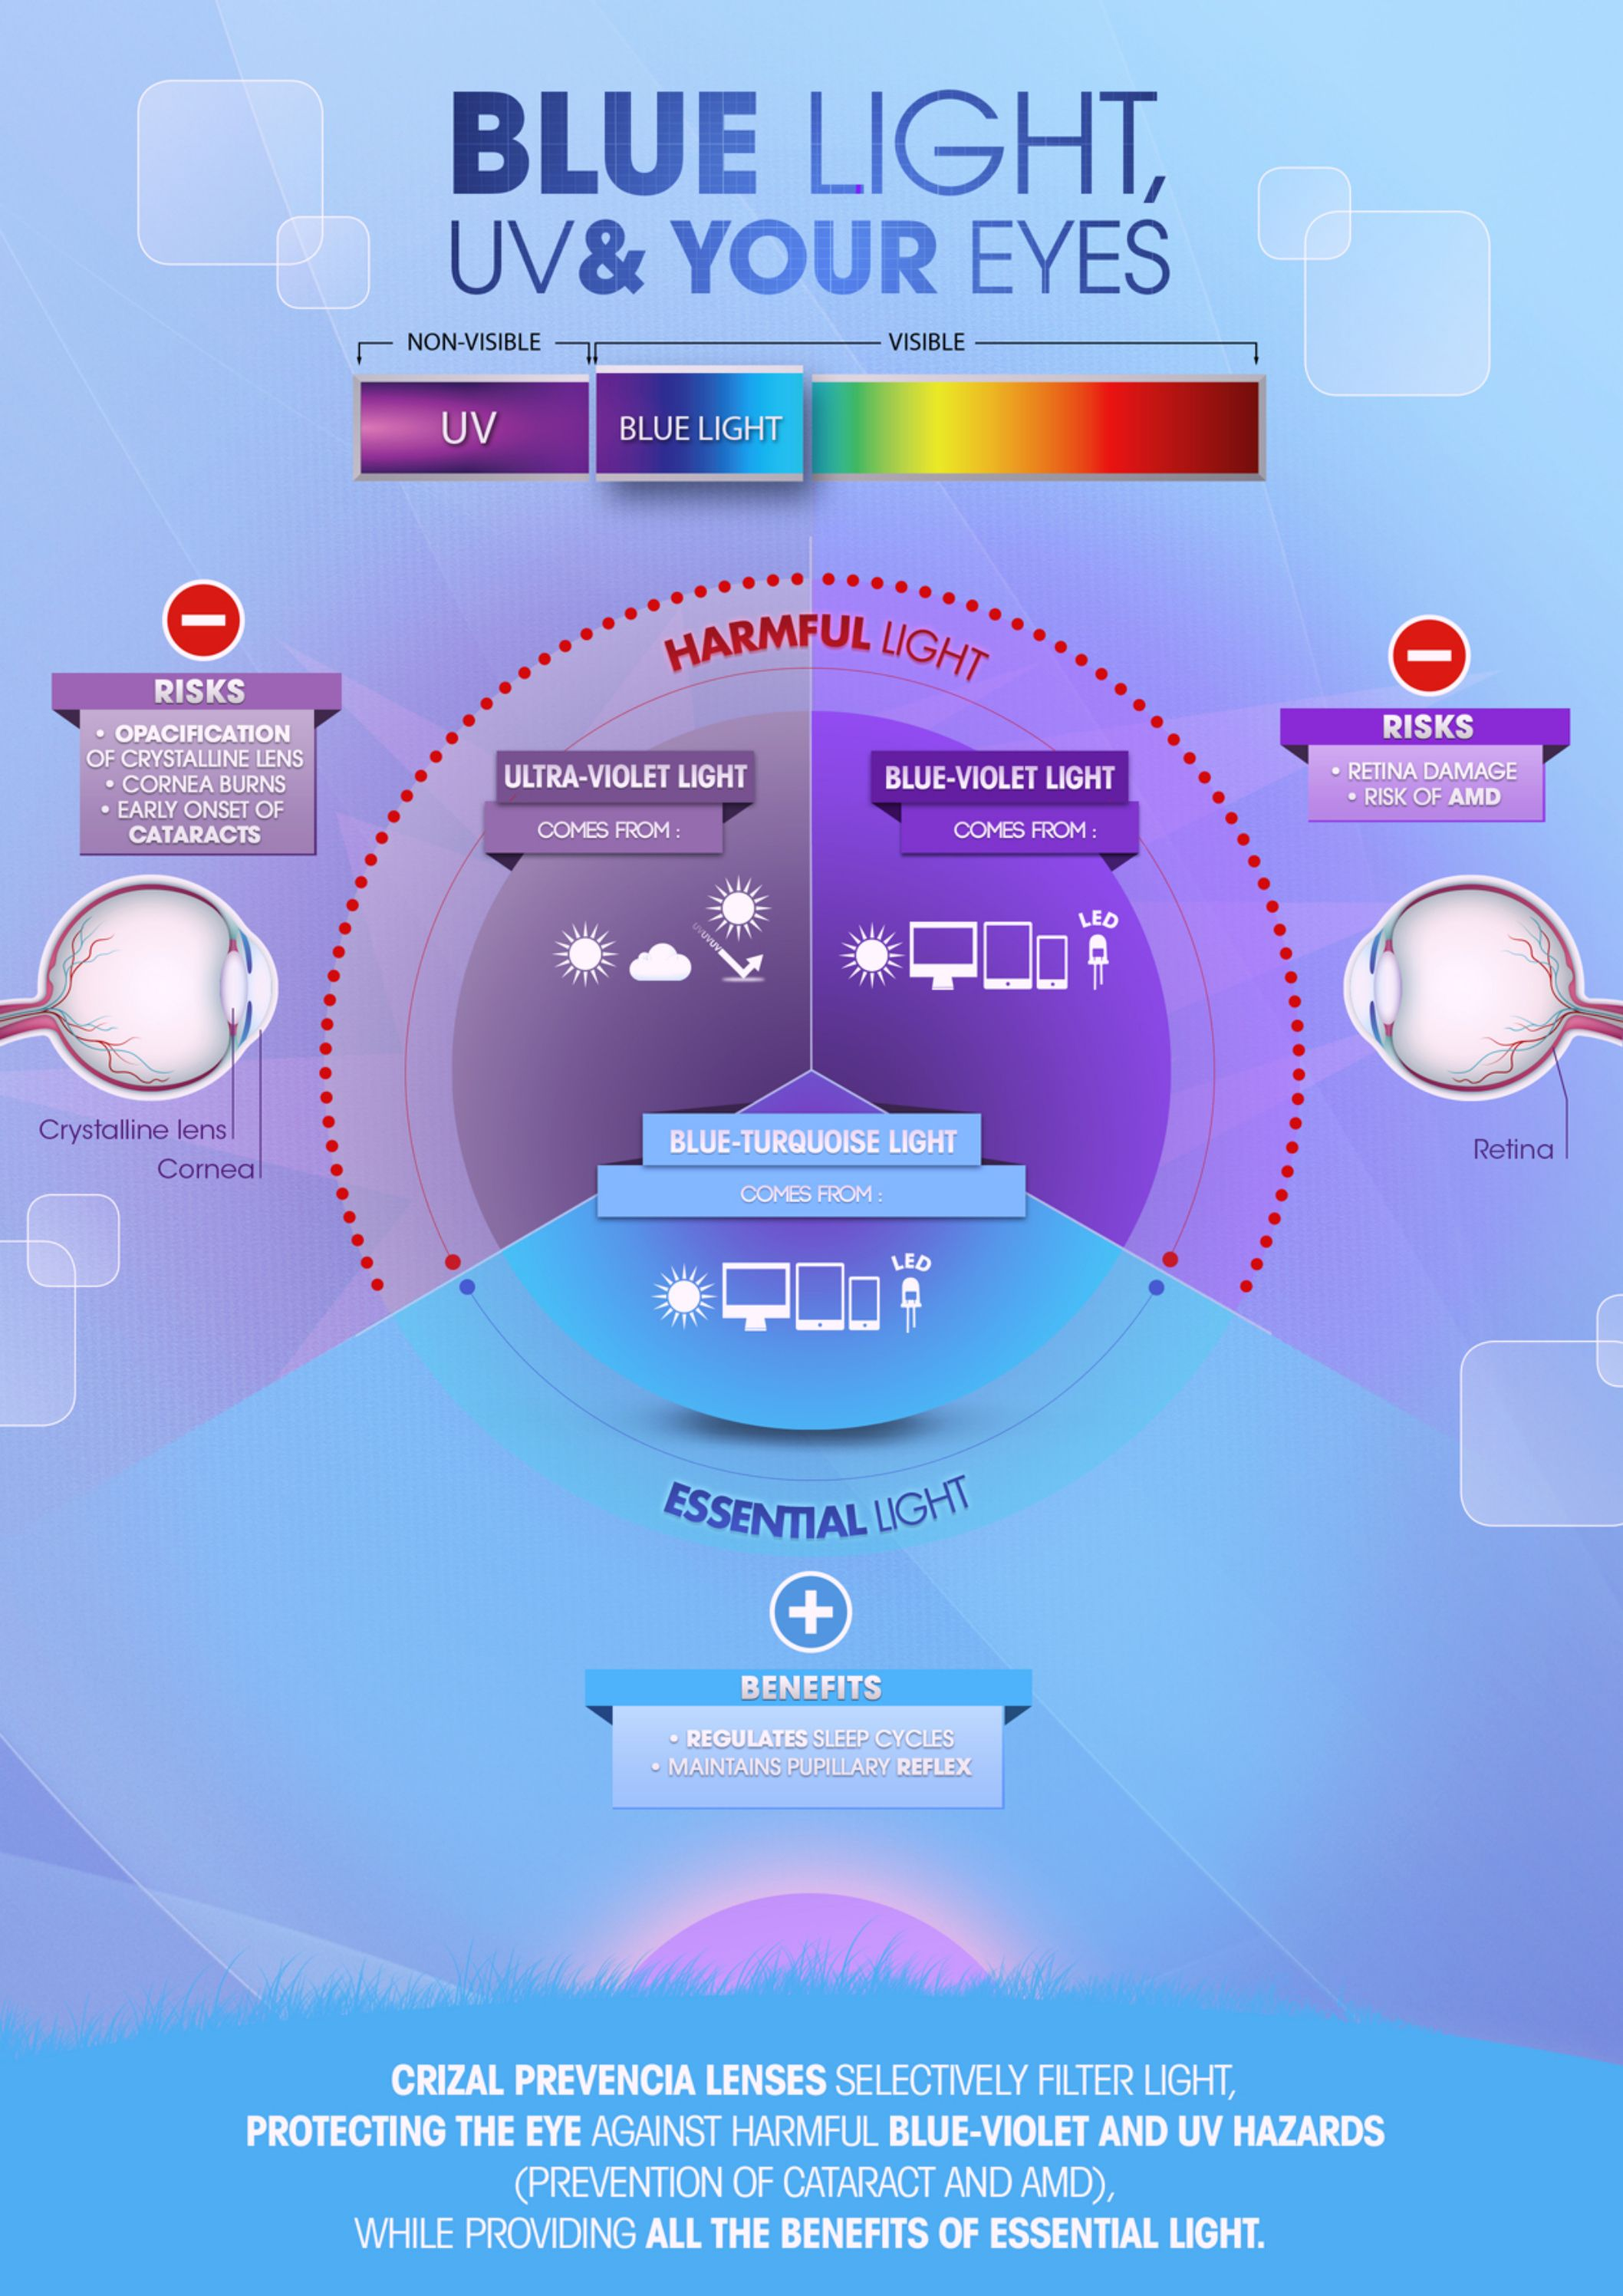 Blue light UV u your eyes See in the infographic the harmful and